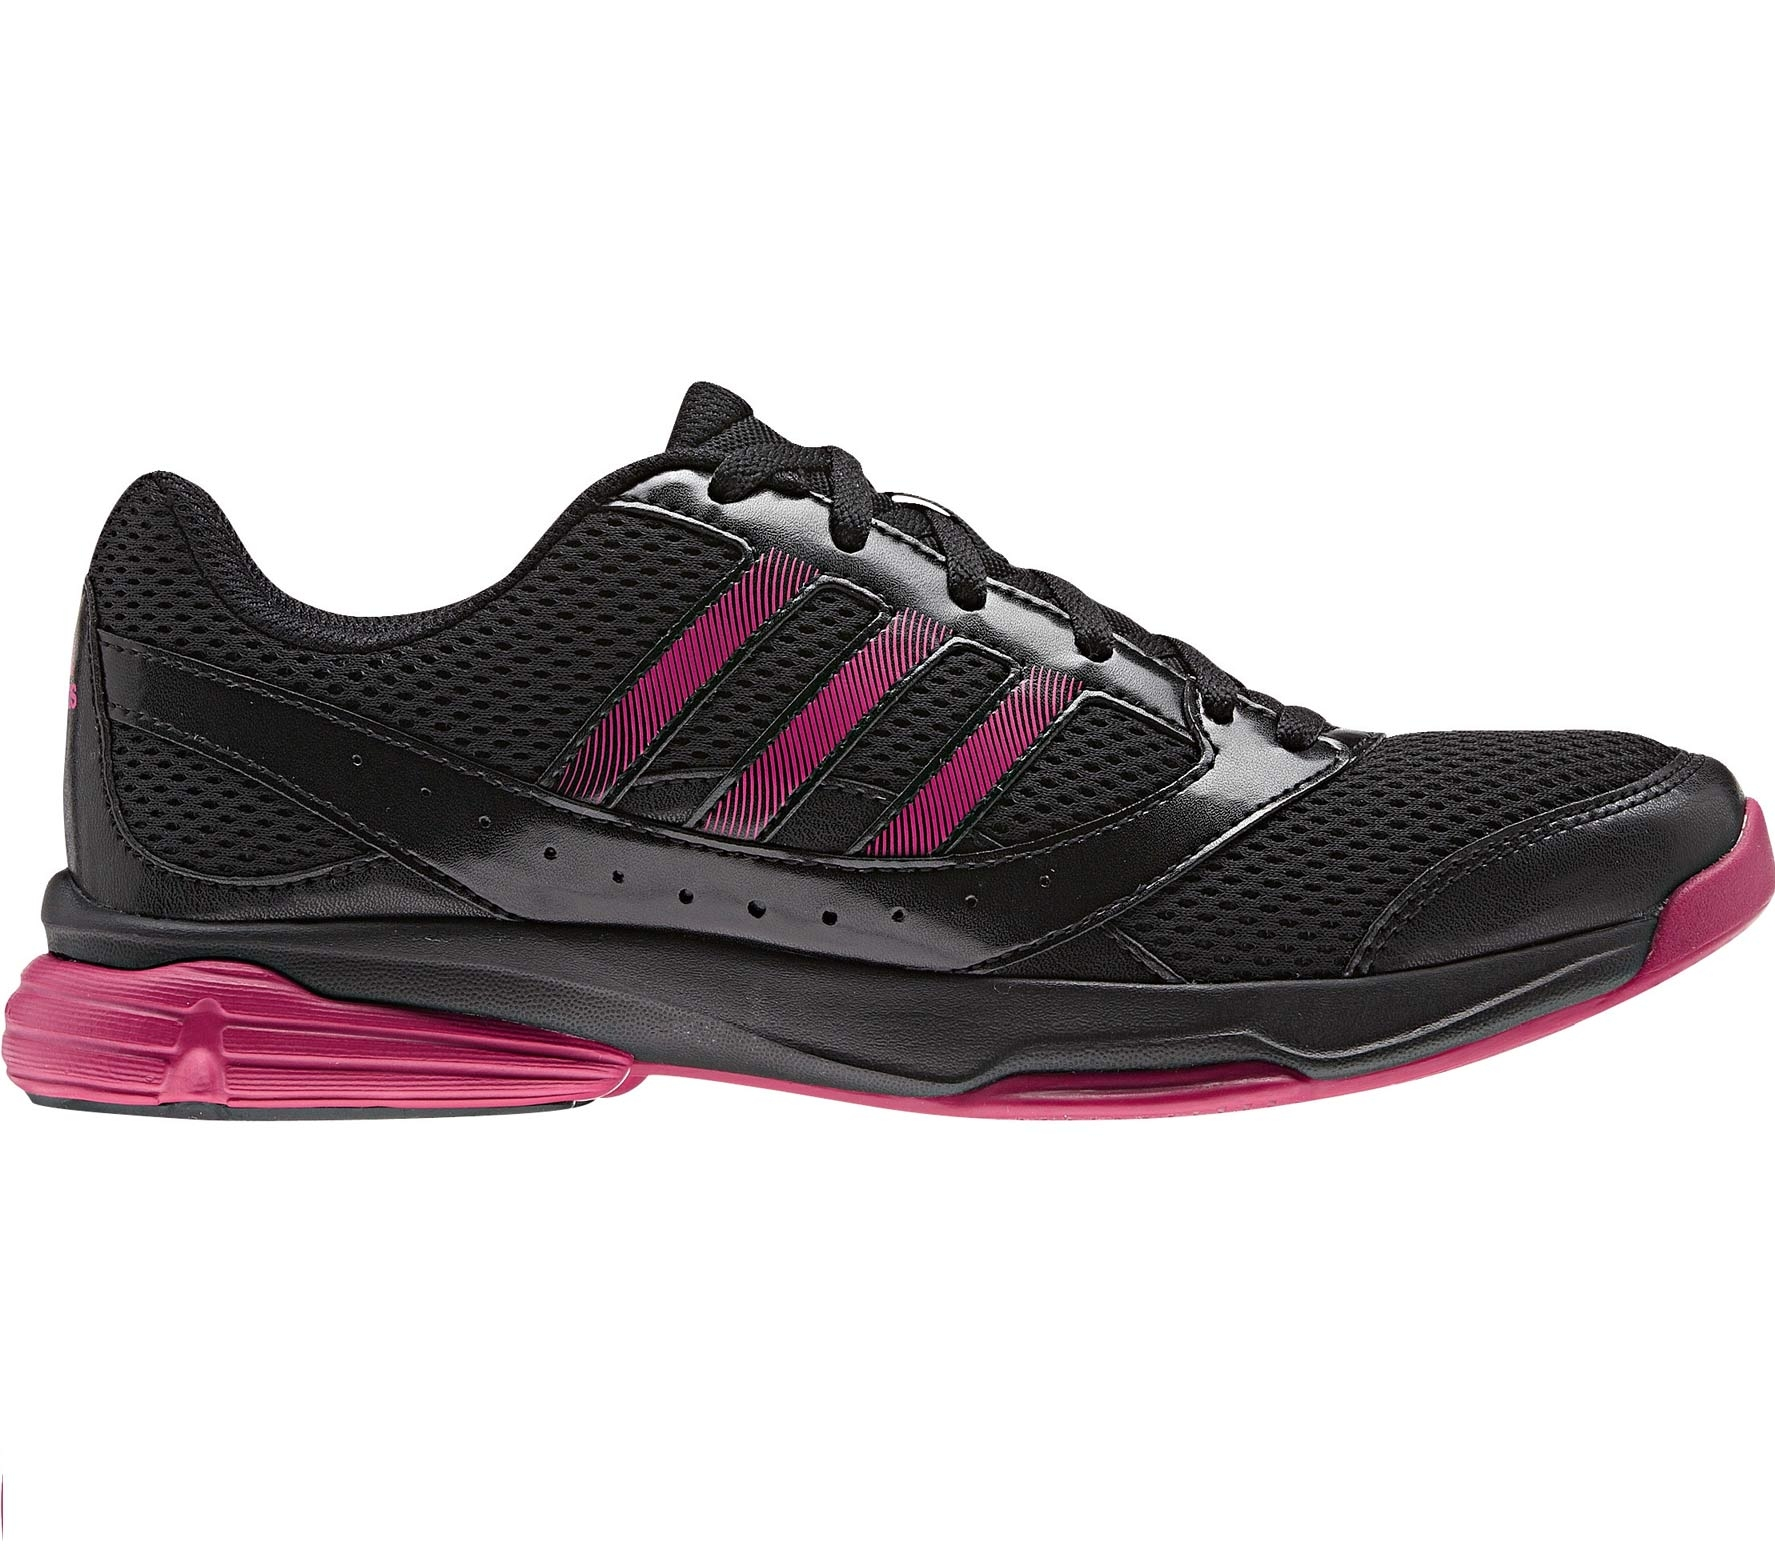 Adidas - Fitness Shoes Women Arianna II - HW13